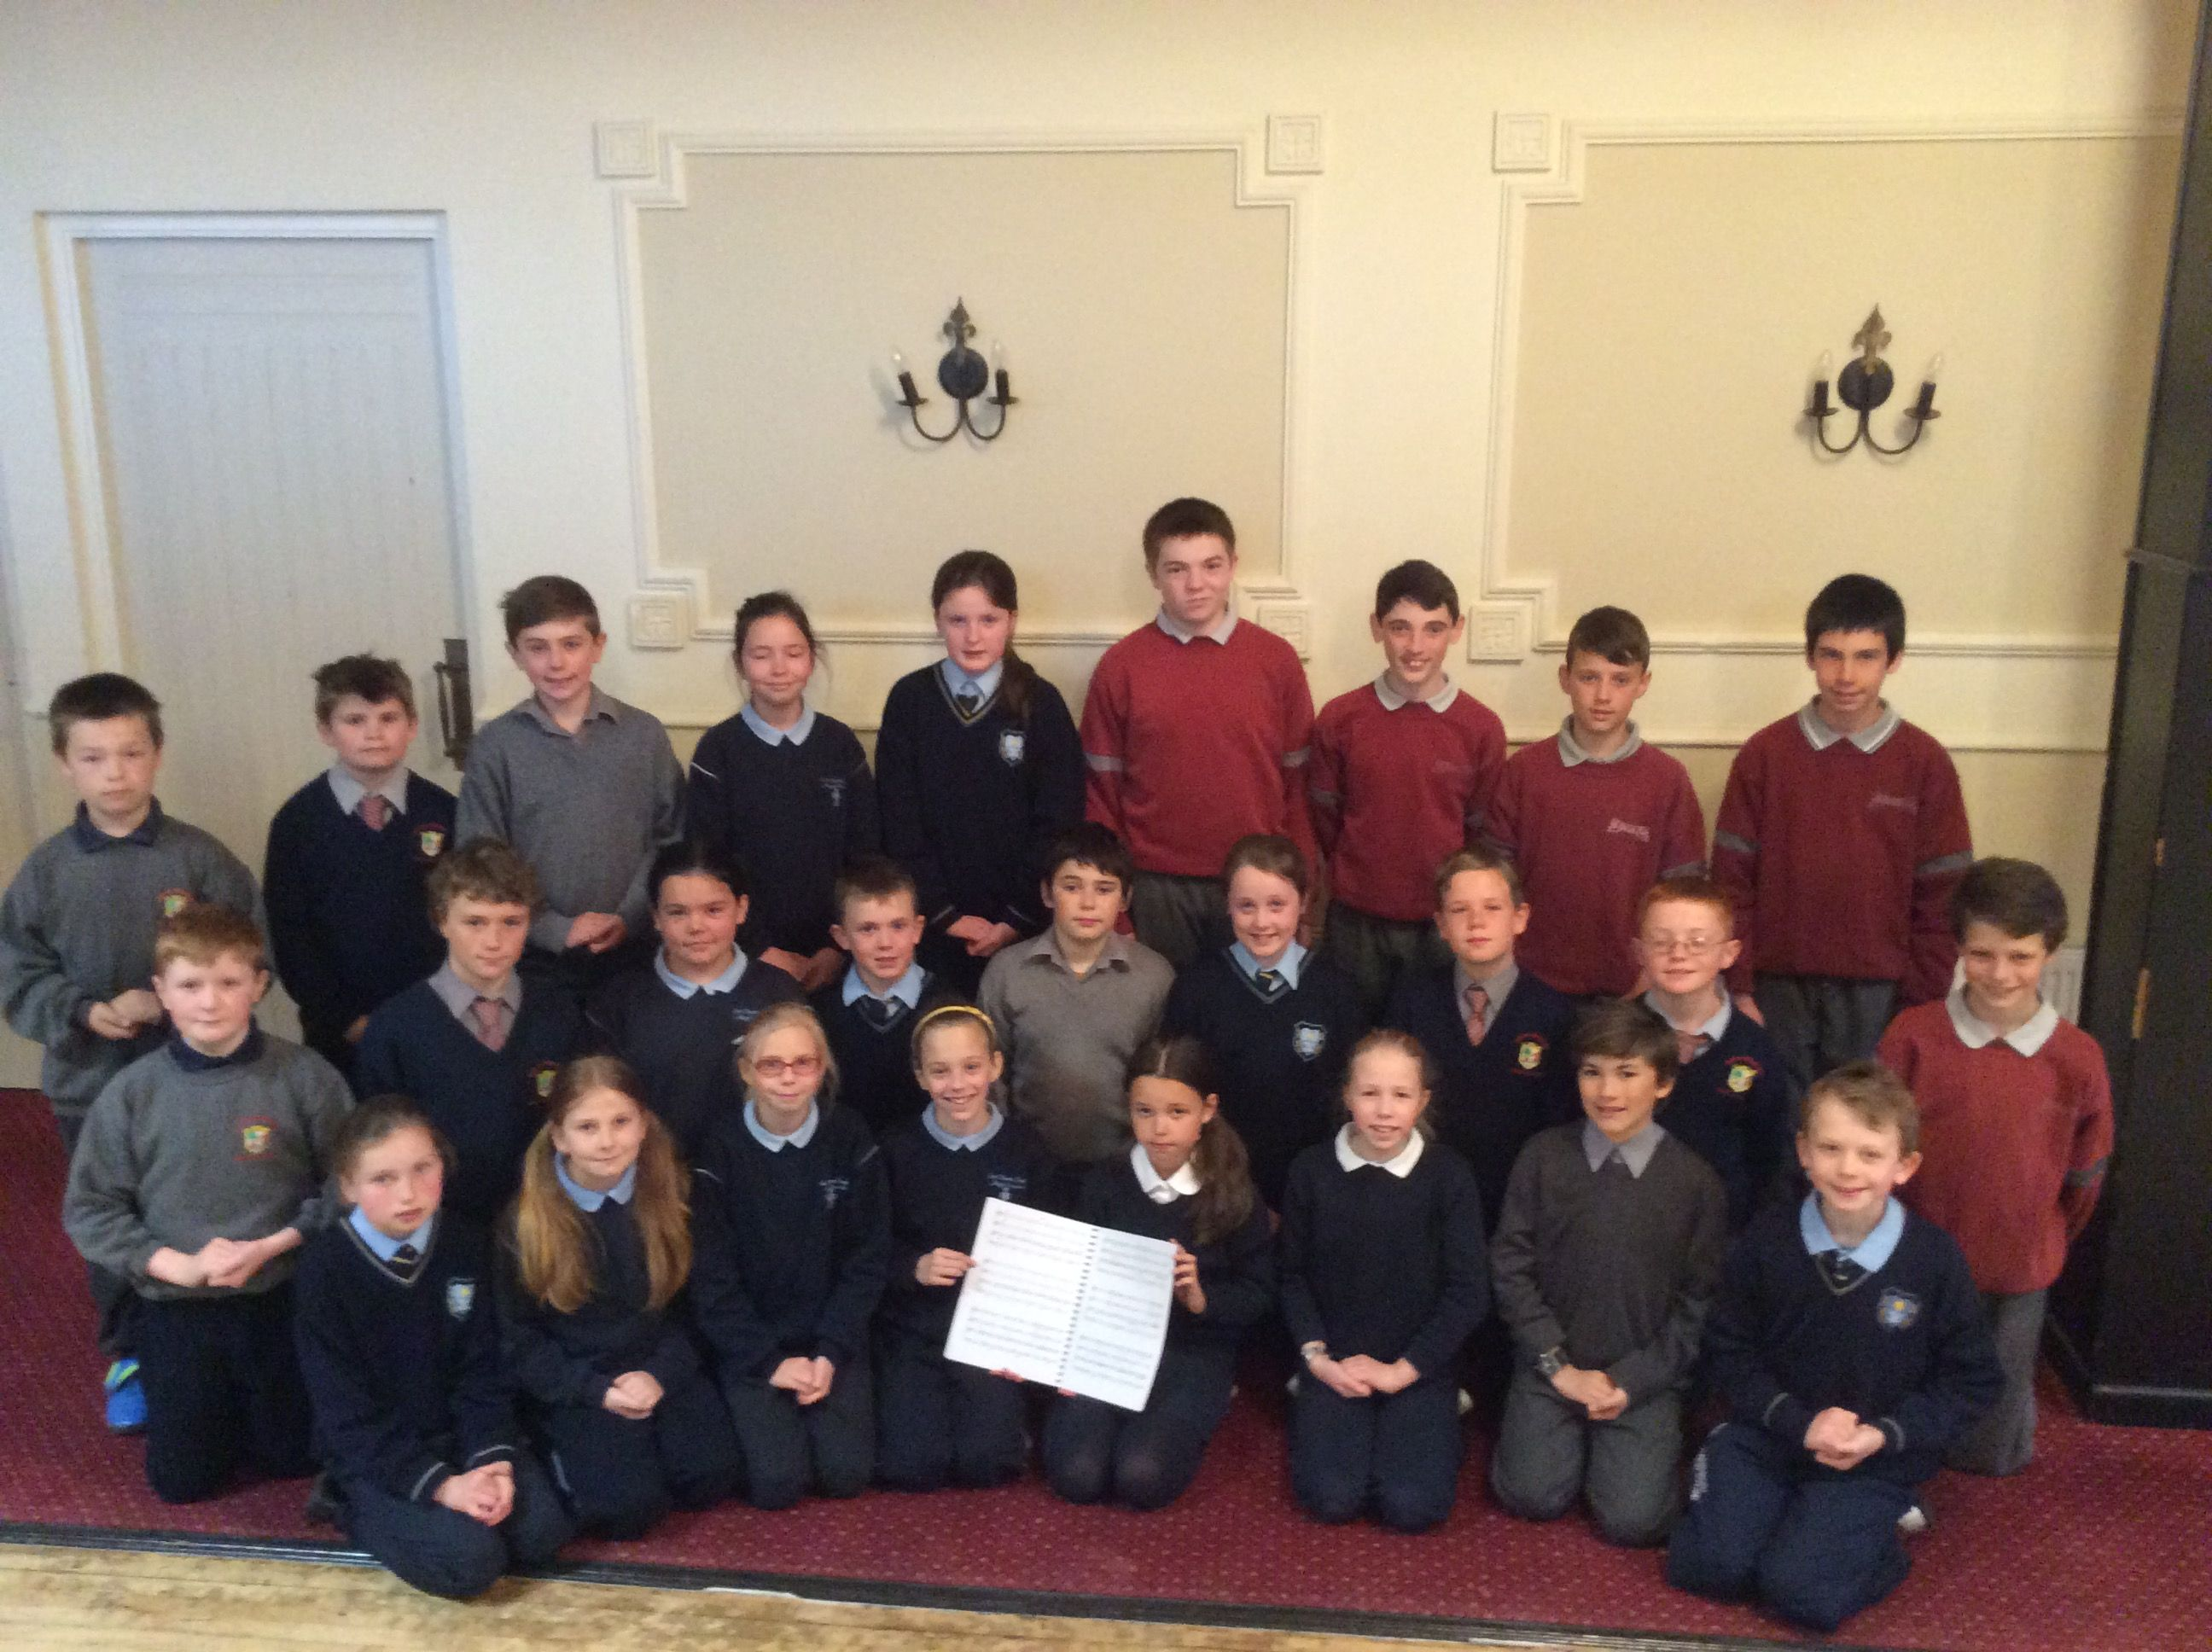 The National Childrens Choir is a school-based choral experience for primary school children.